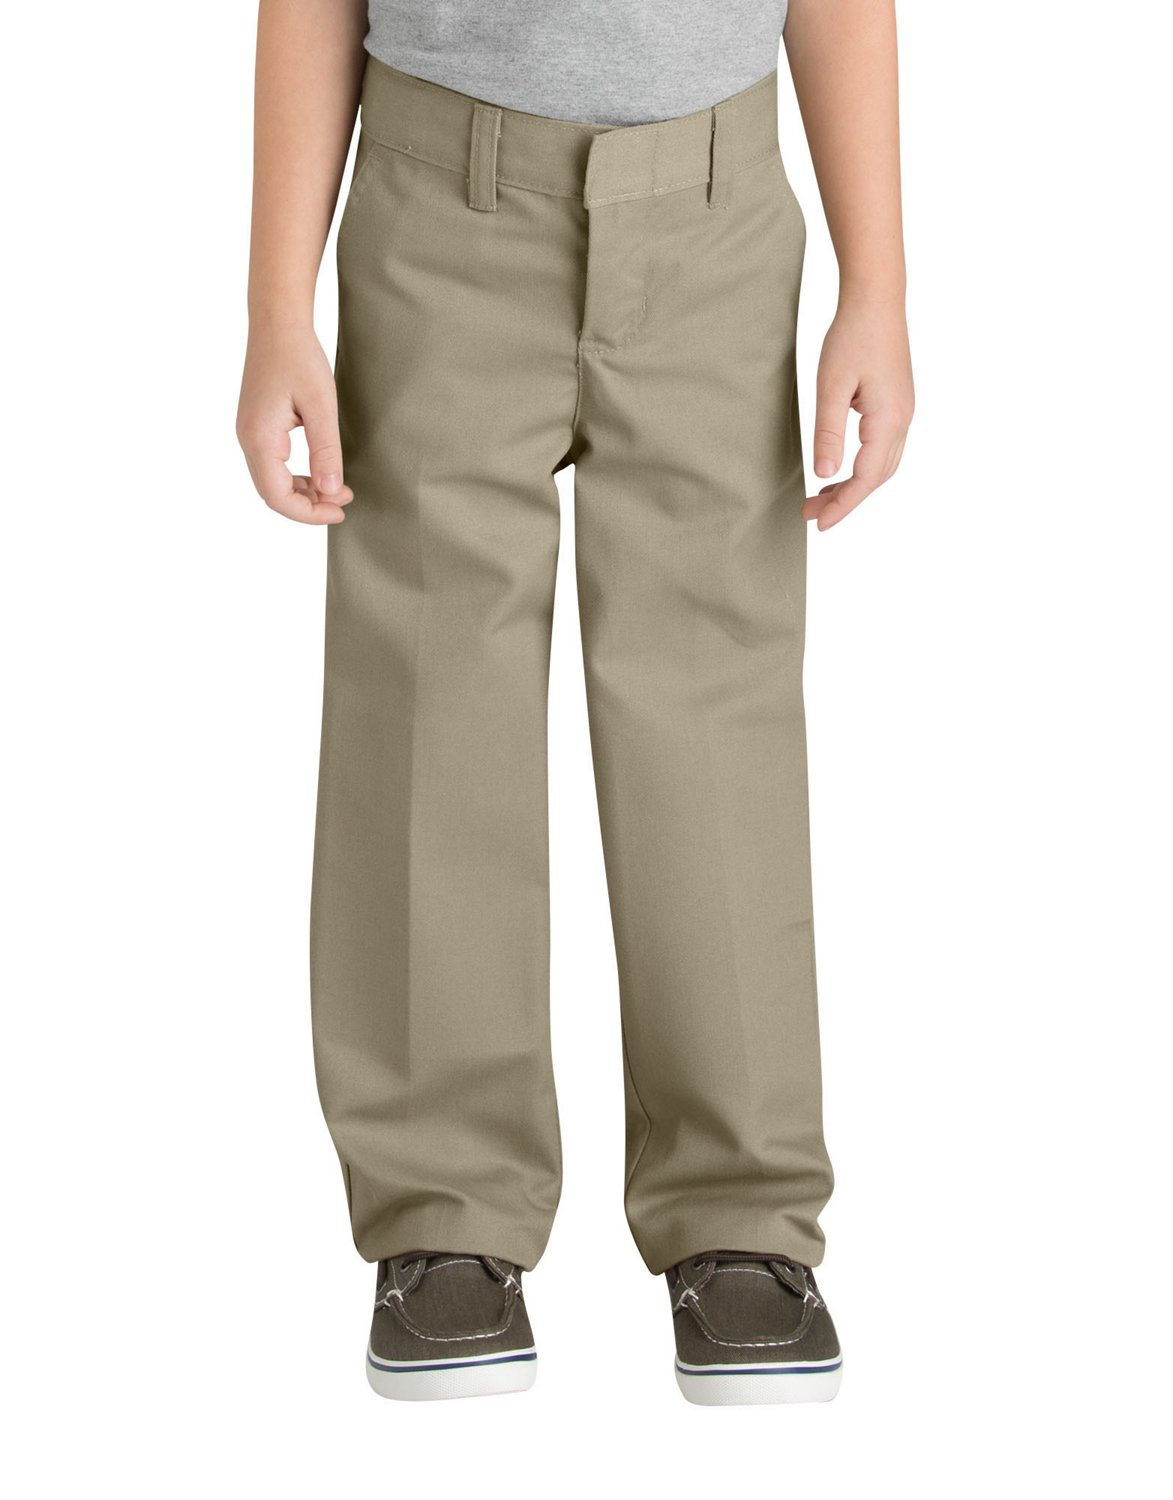 246e4fcf76a91 Display product reviews for Dickies Boys  4-7 Classic Fit Straight Leg Flat  Front